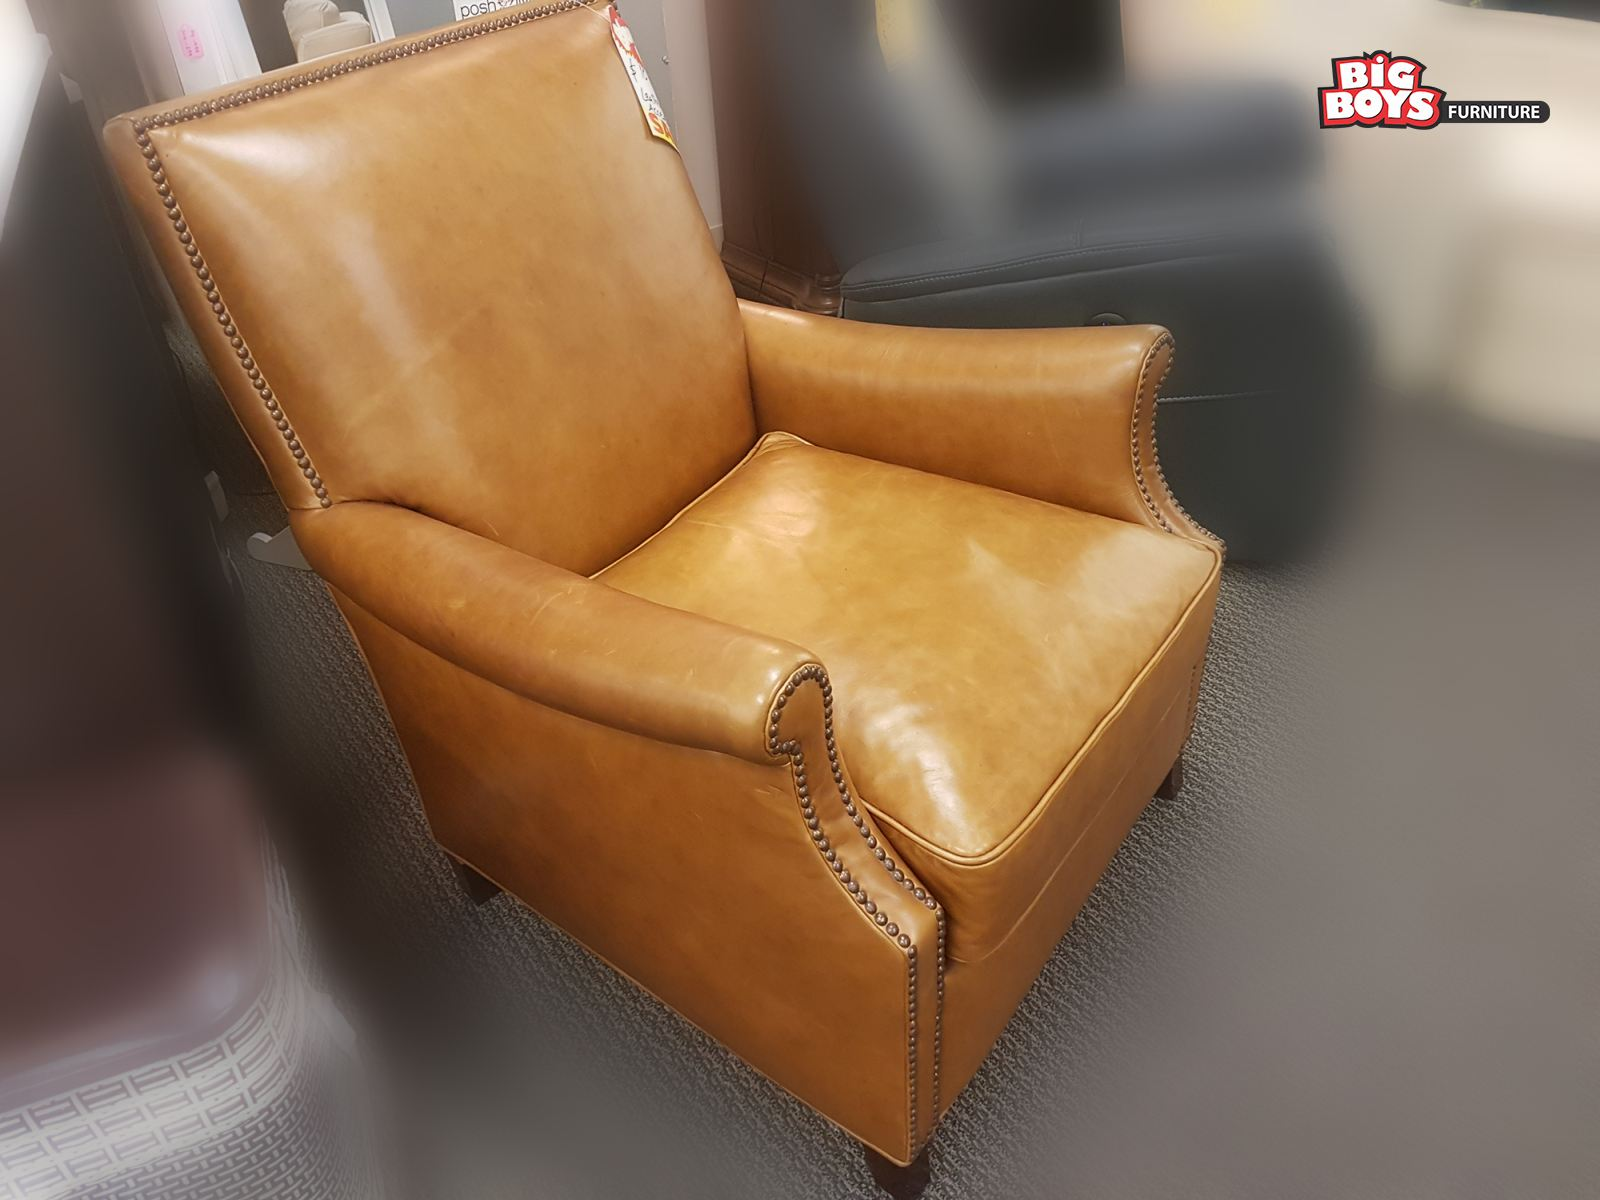 For best deals on Chairs visit us at Big Boys Furniture Delta/Surrey